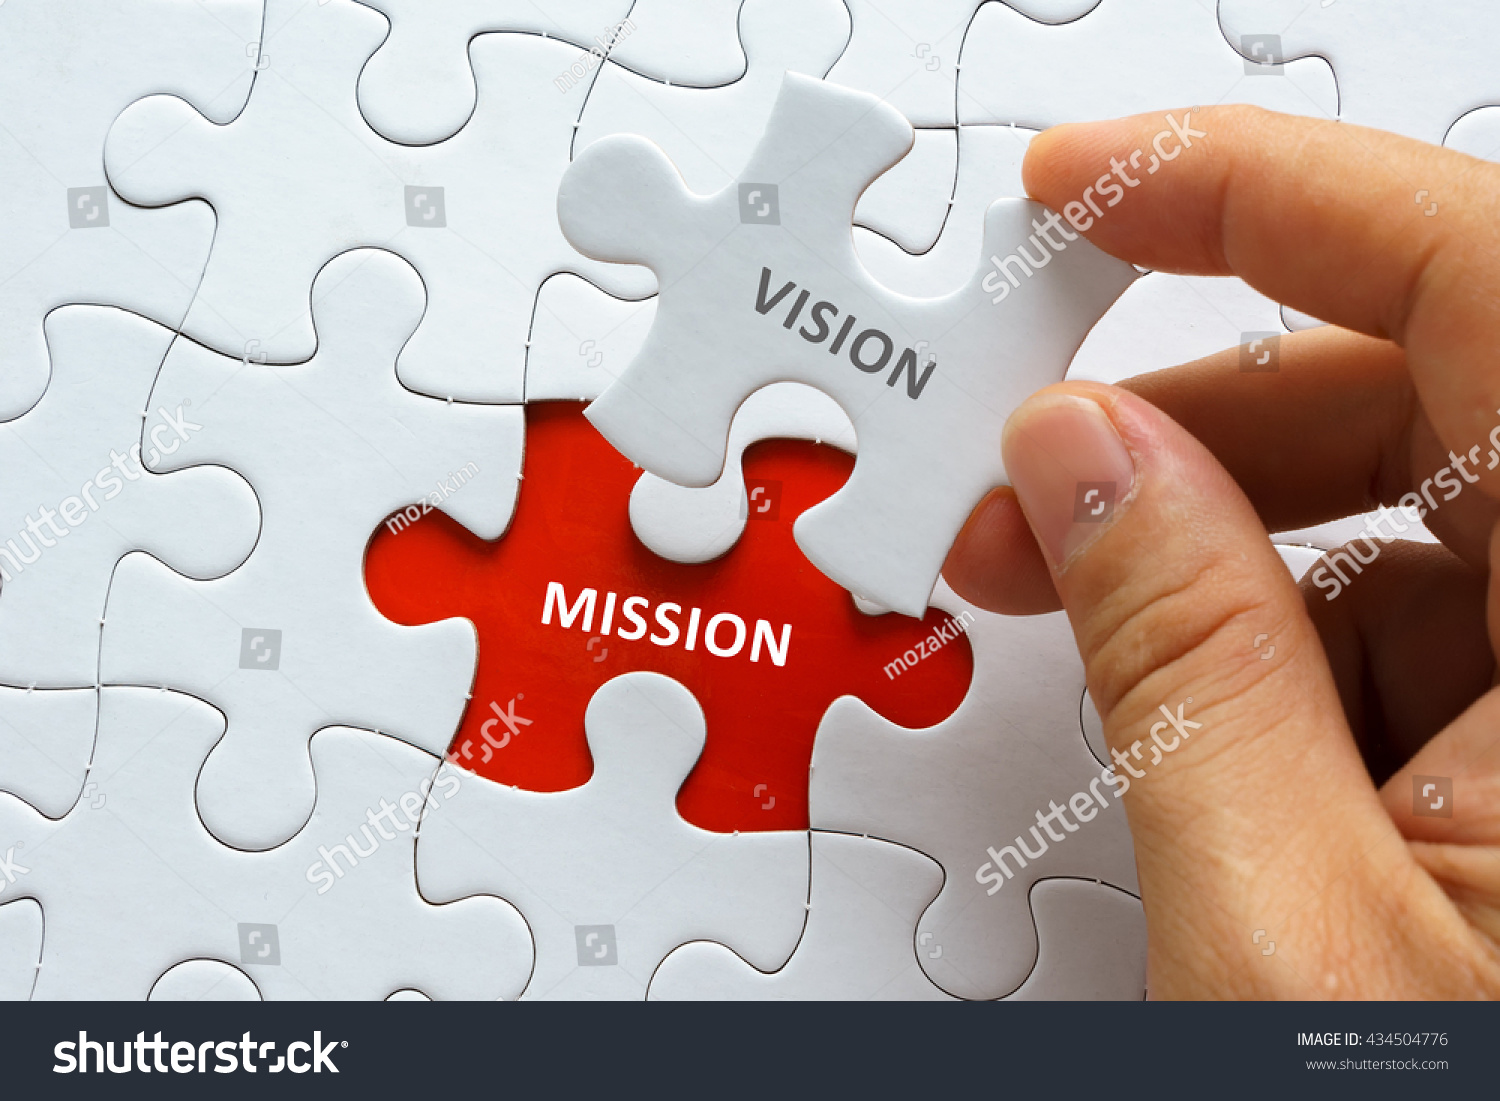 stock-photo-hand-holding-piece-of-jigsaw-puzzle-with-word-vision-mission-434504776